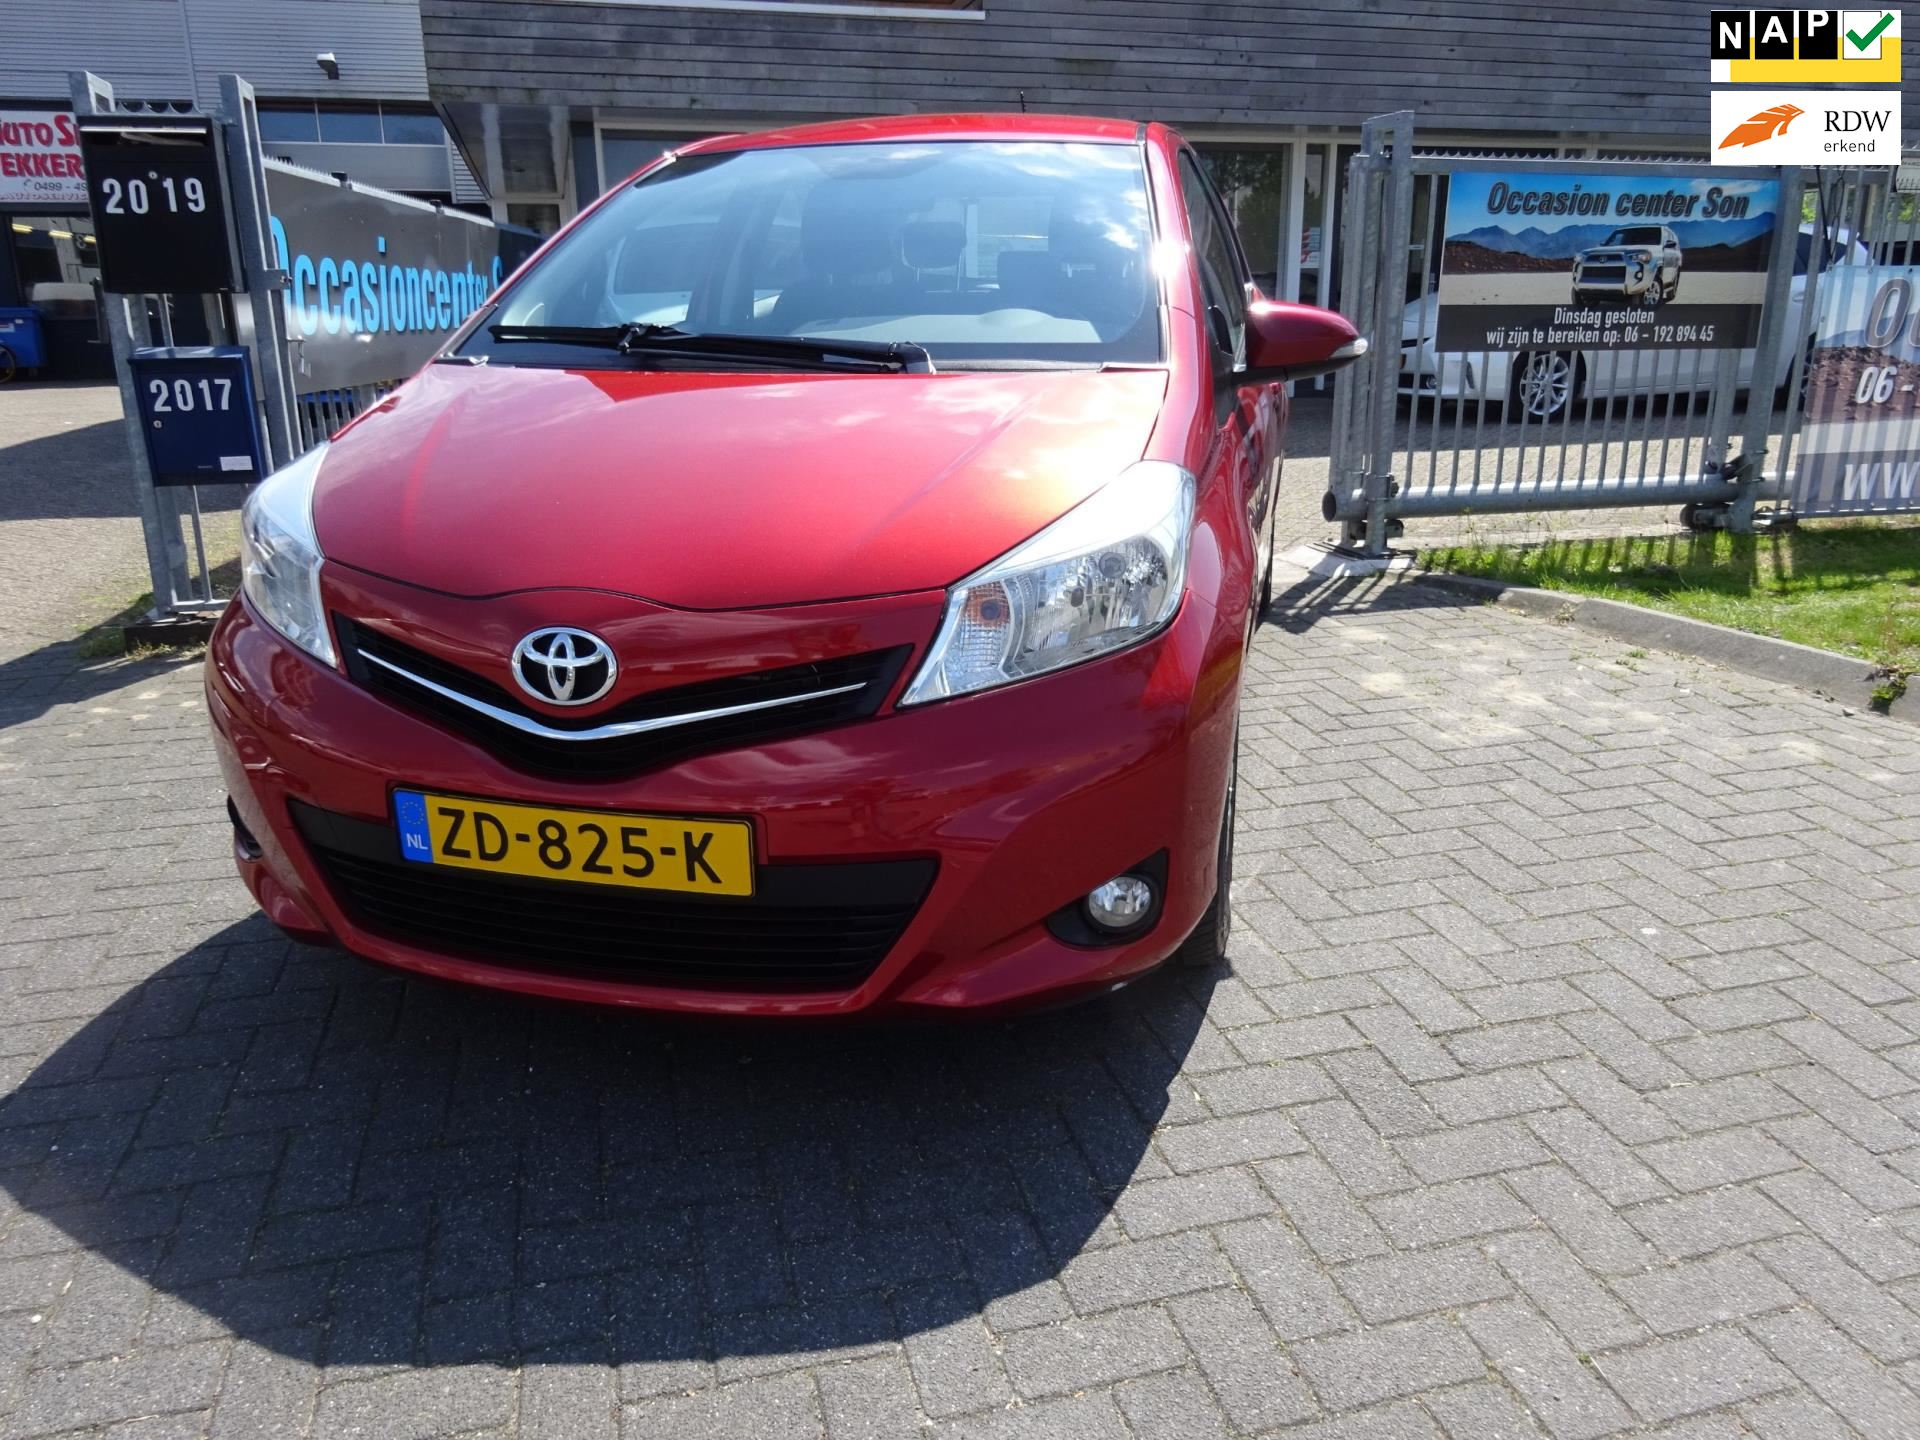 Toyota Yaris occasion - Occasion Center Son B.V.